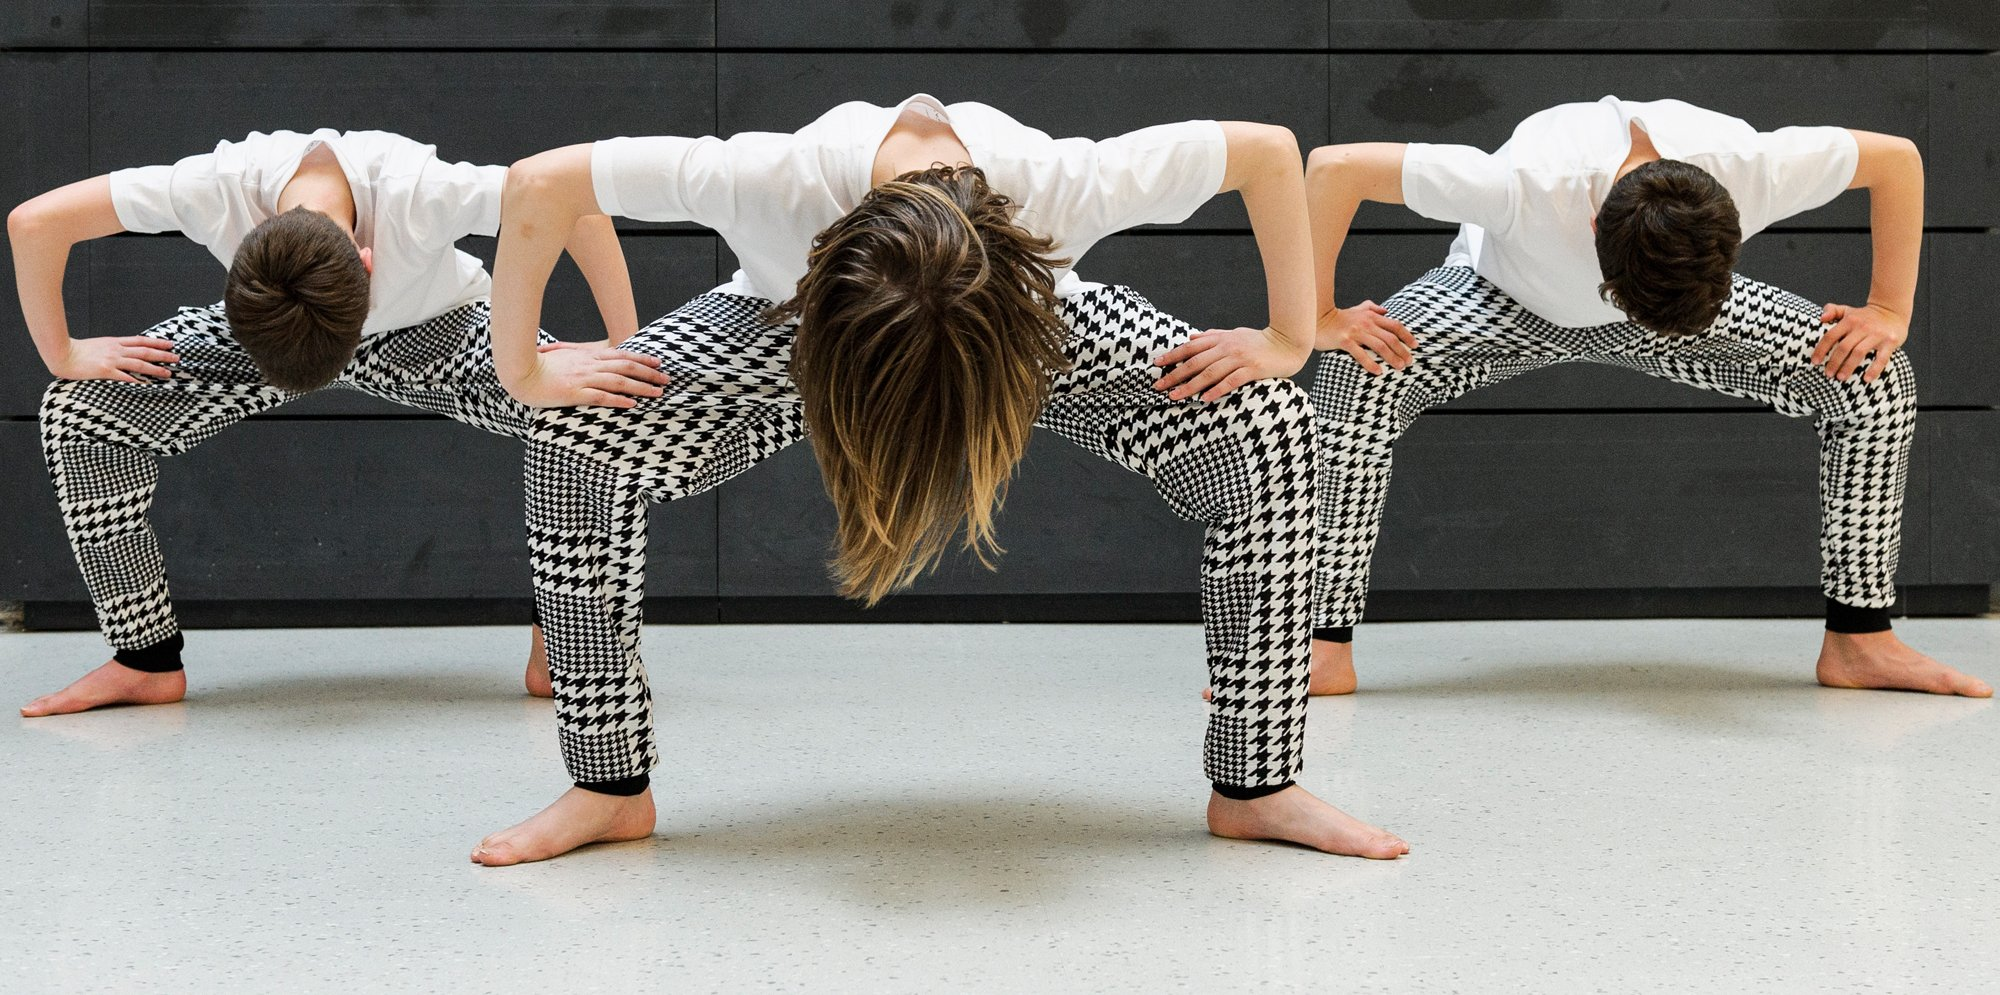 Three people dancing in front of a black wall. They stand with their legs turned out and bent over, so you only see shoulders, the tops of their heads and their legs in black-and-white patterned trousers.